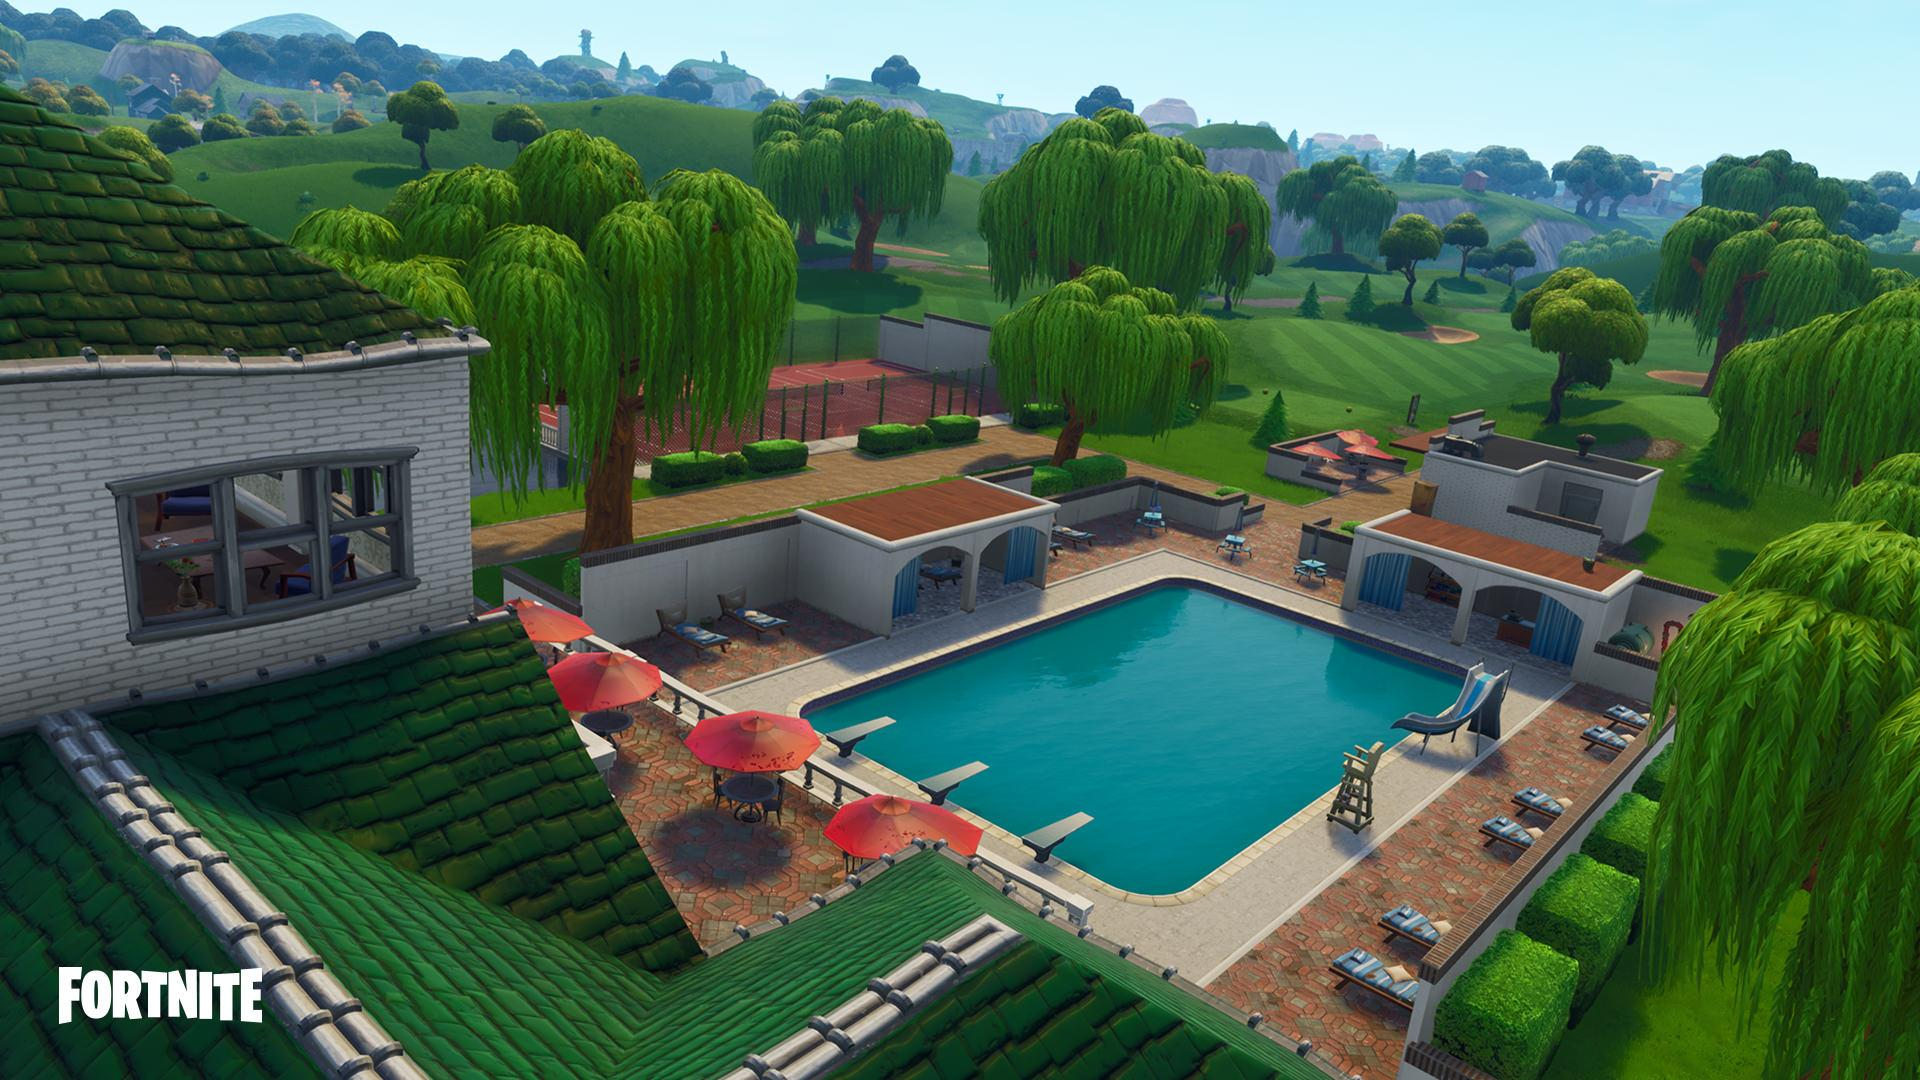 Fortnite Battle Royale - Populated Areas of Season 5 | Tom's Guide Forum